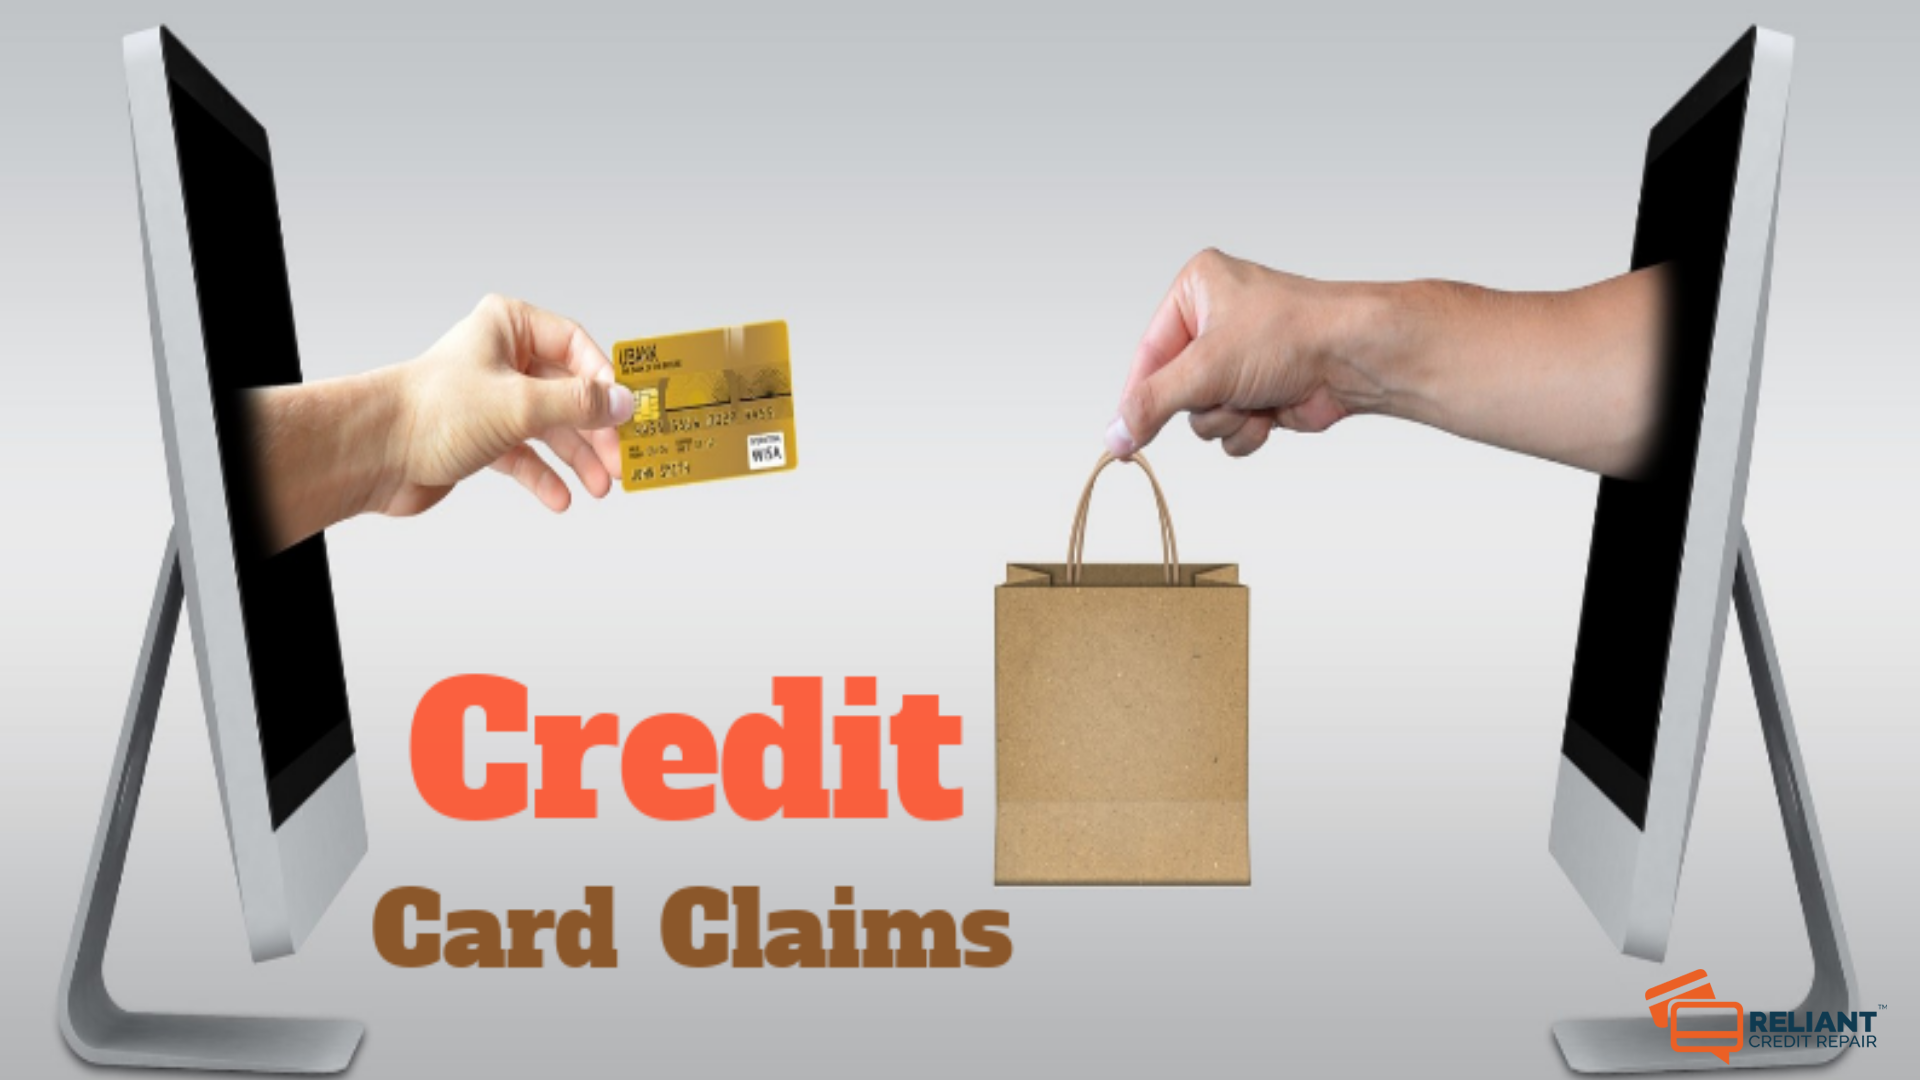 Credit Card Claims and Defenses